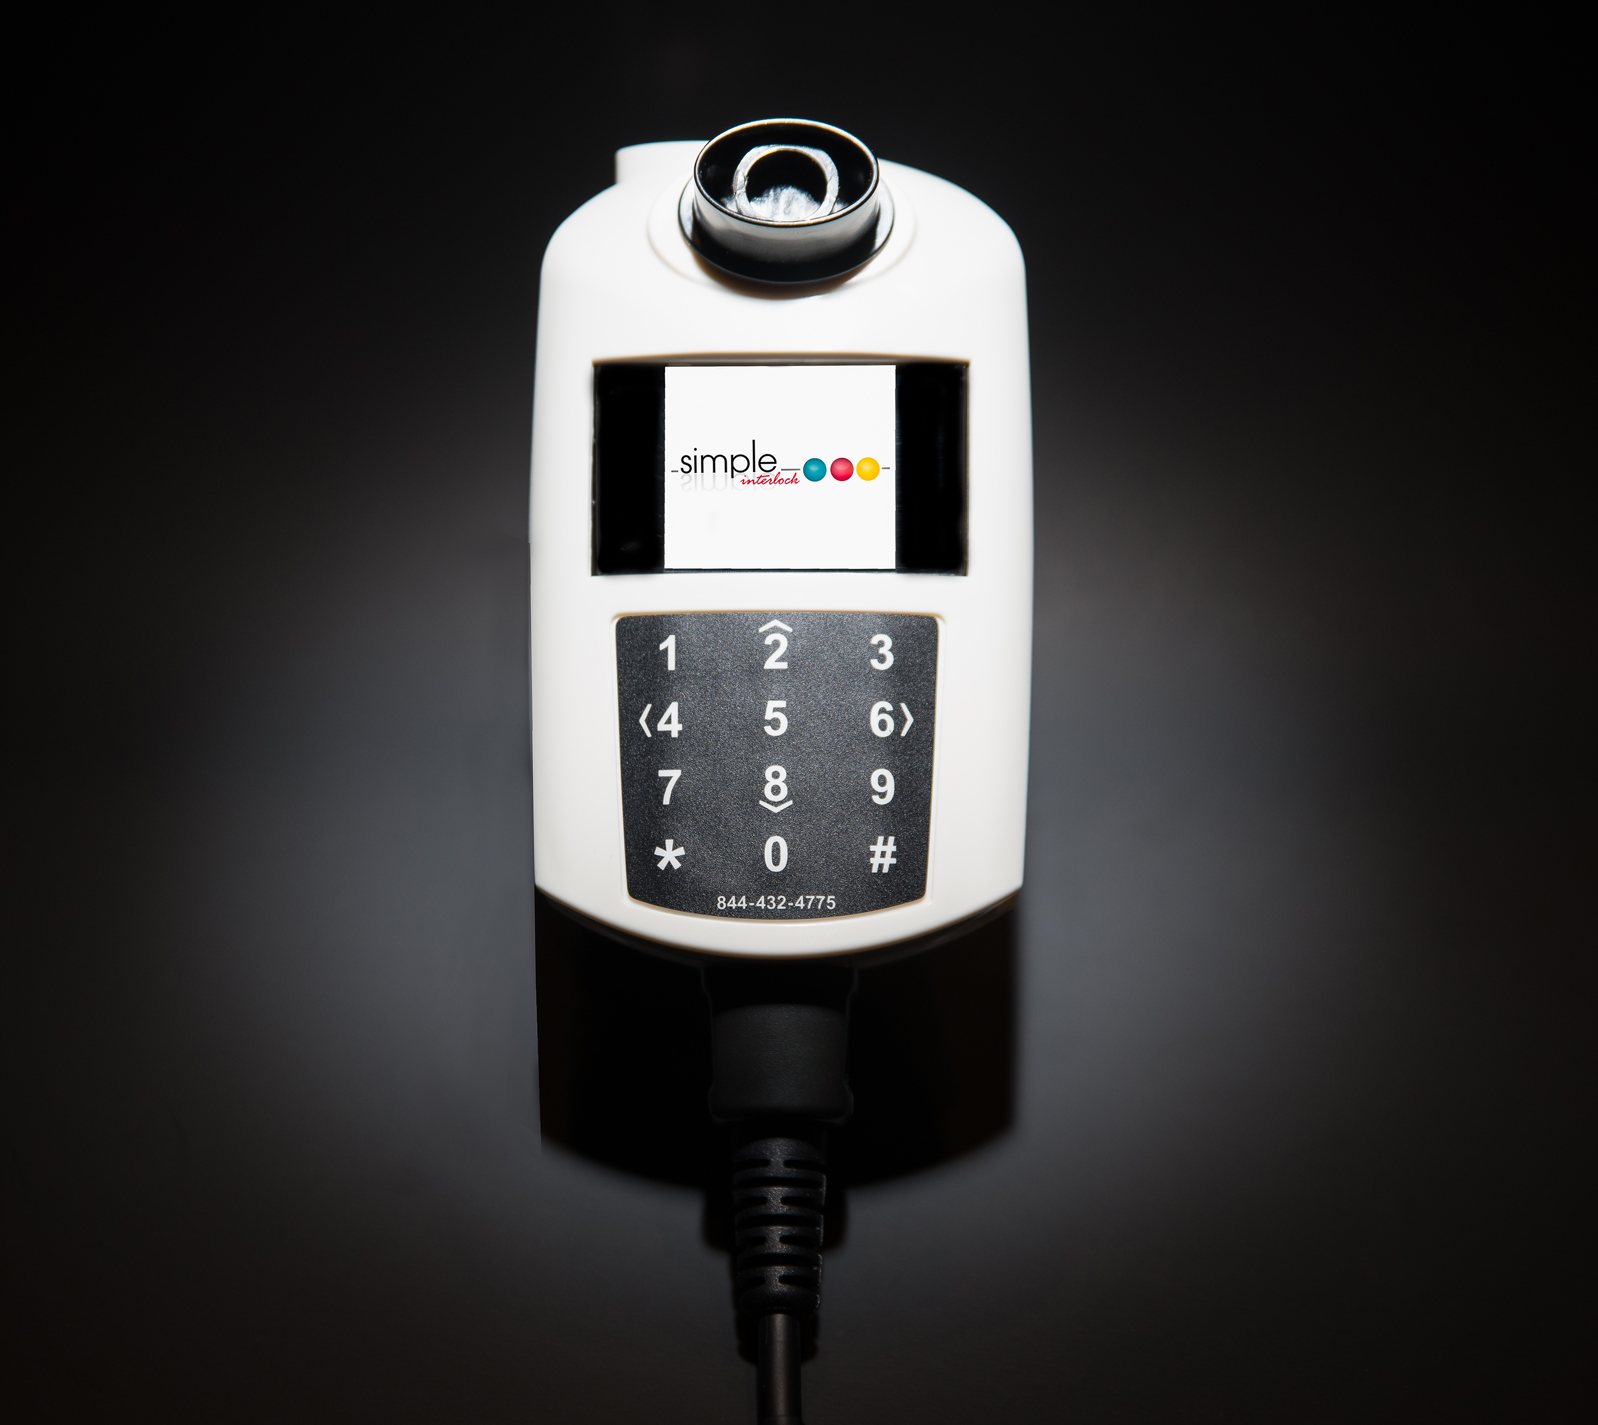 Cheapest Ignition Interlock Device In The Usa